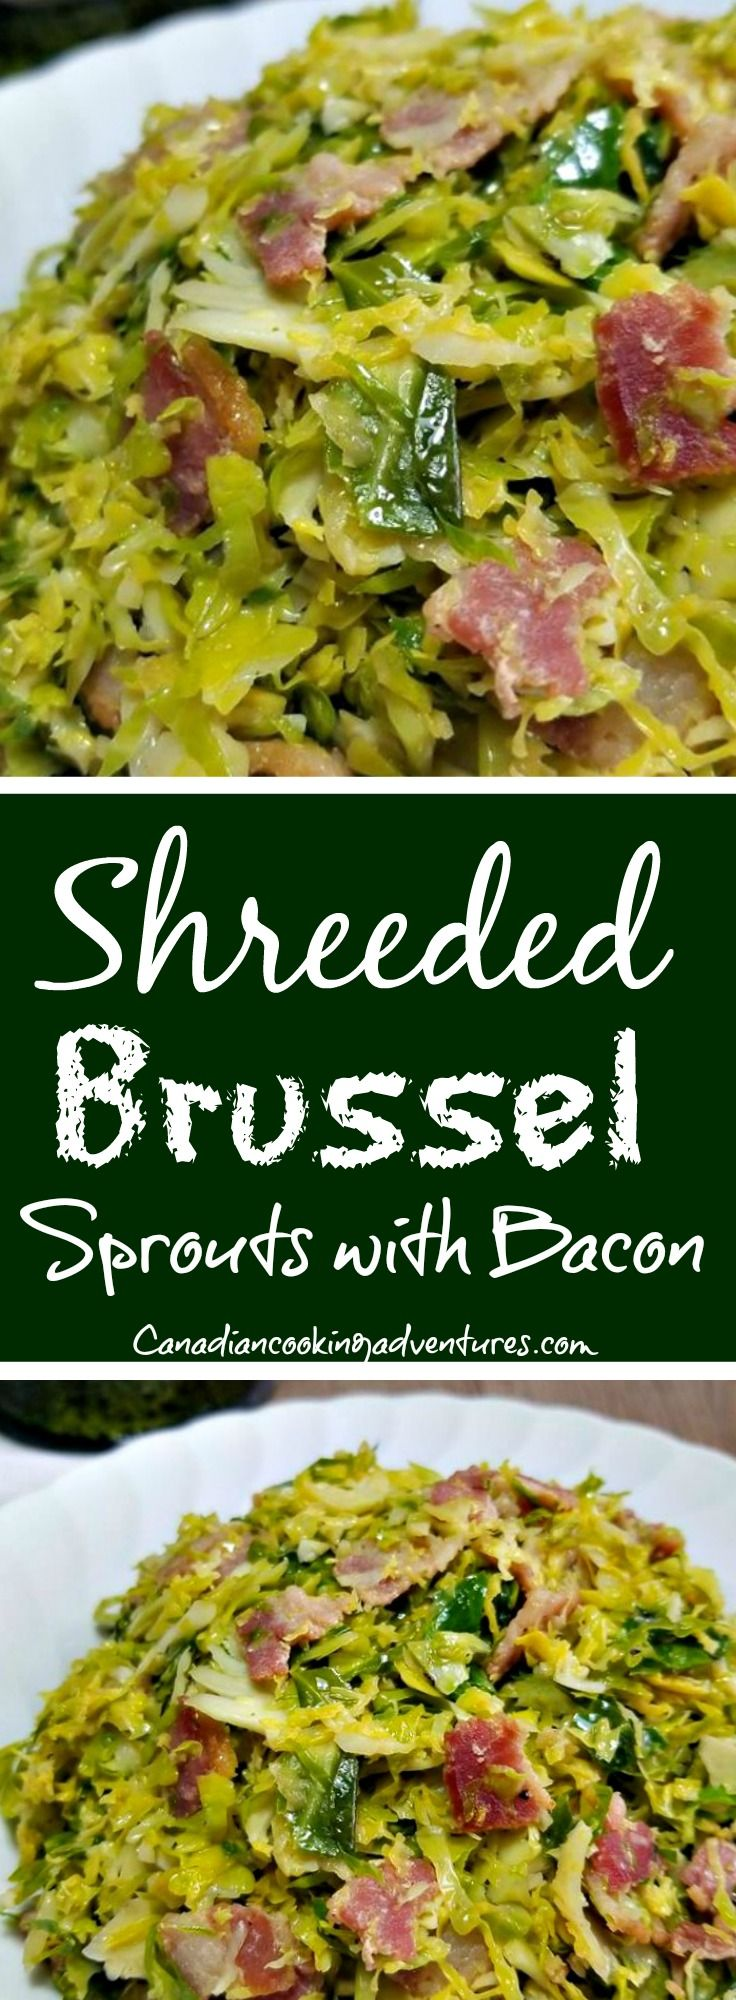 Shredded Brussel Sprouts with Bacon Bacon #bacon #brussels #brusselsprouts #sprouts #shredded #side #sidedish #christmas #thanksgiving #vegetables #sidedish #sides #christmas #thanksgiving #recipe #recipes #canadiancookingadventures #cooking #delcious #yummy #tasty #blogger #foodie #foodblogger #blog